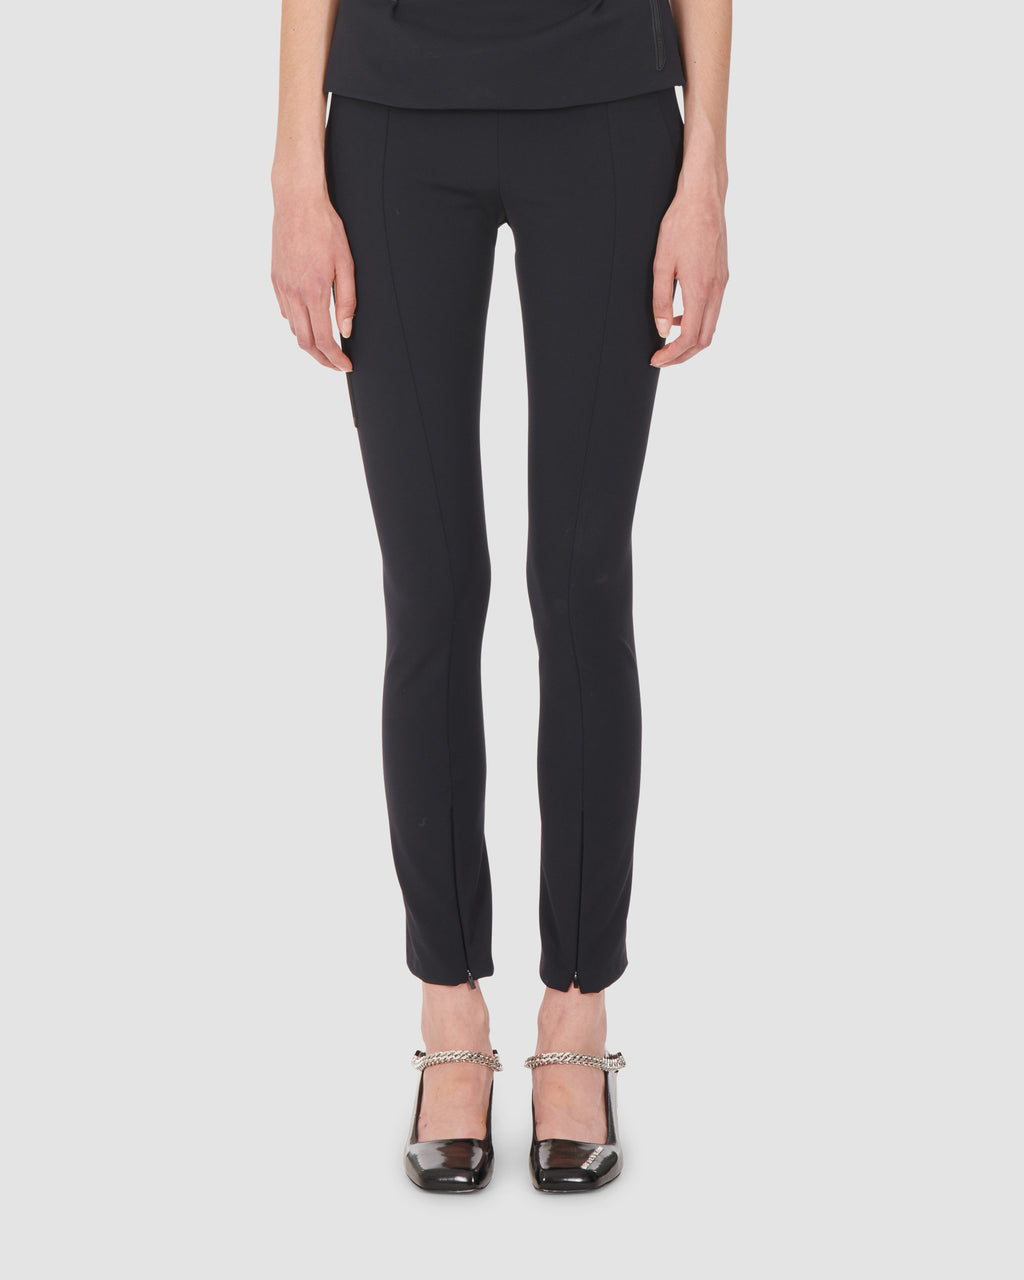 1017 ALYX 9SM | VICA LEGGING | Pants | BLACK, Google Shopping, Pants, S20, SS20, Woman, WOMEN